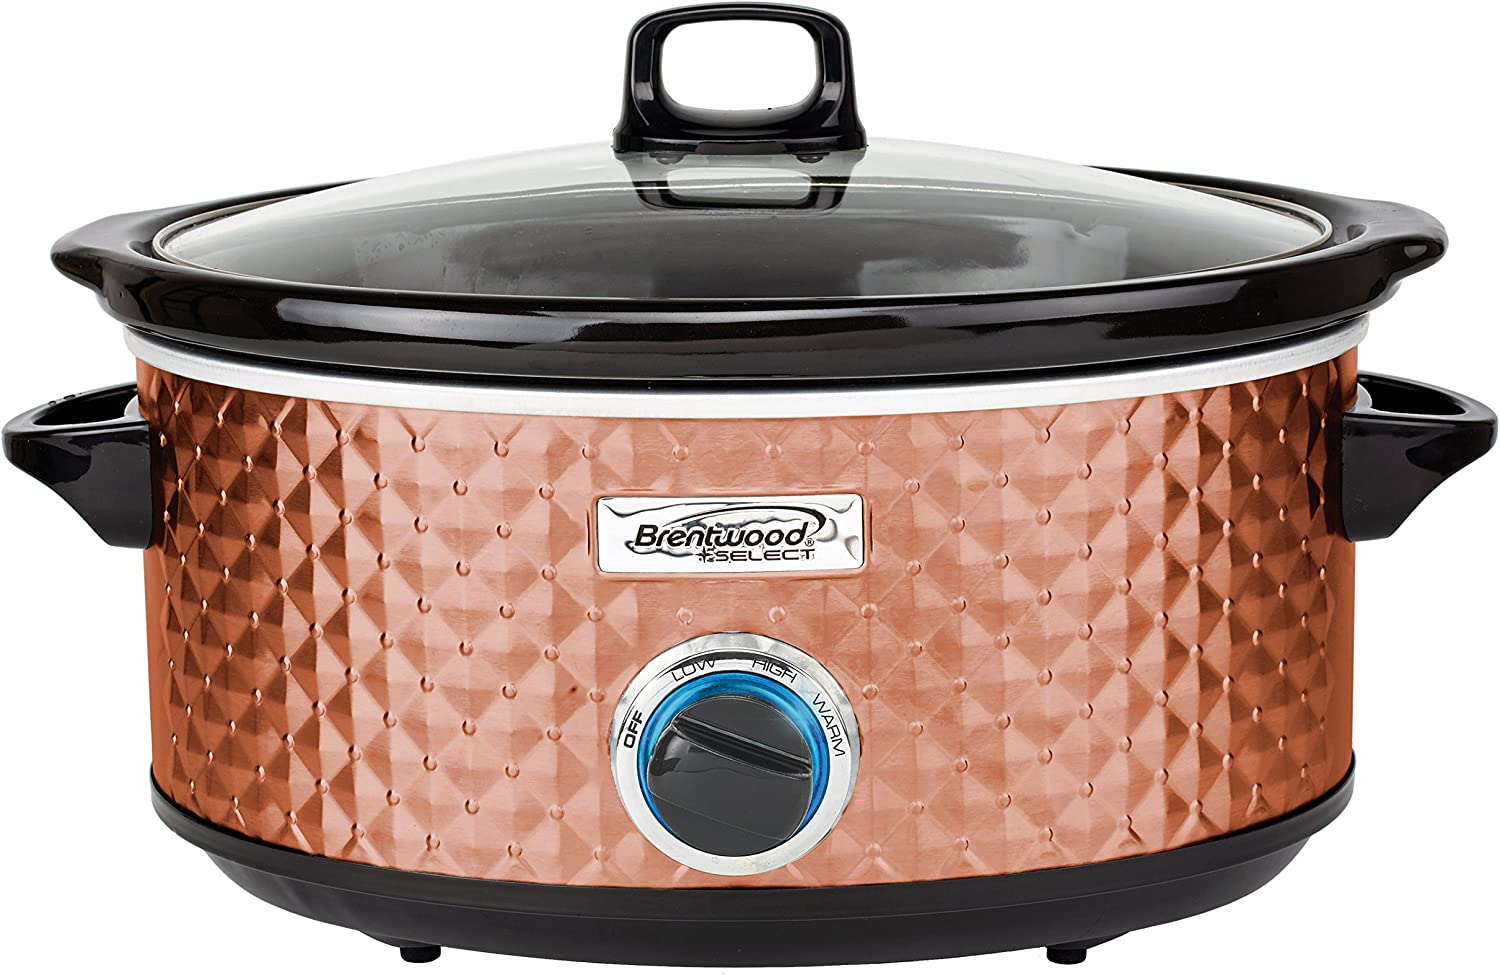 Brentwood Select SC-157C Slow Cooker, 7 Quart, Copper